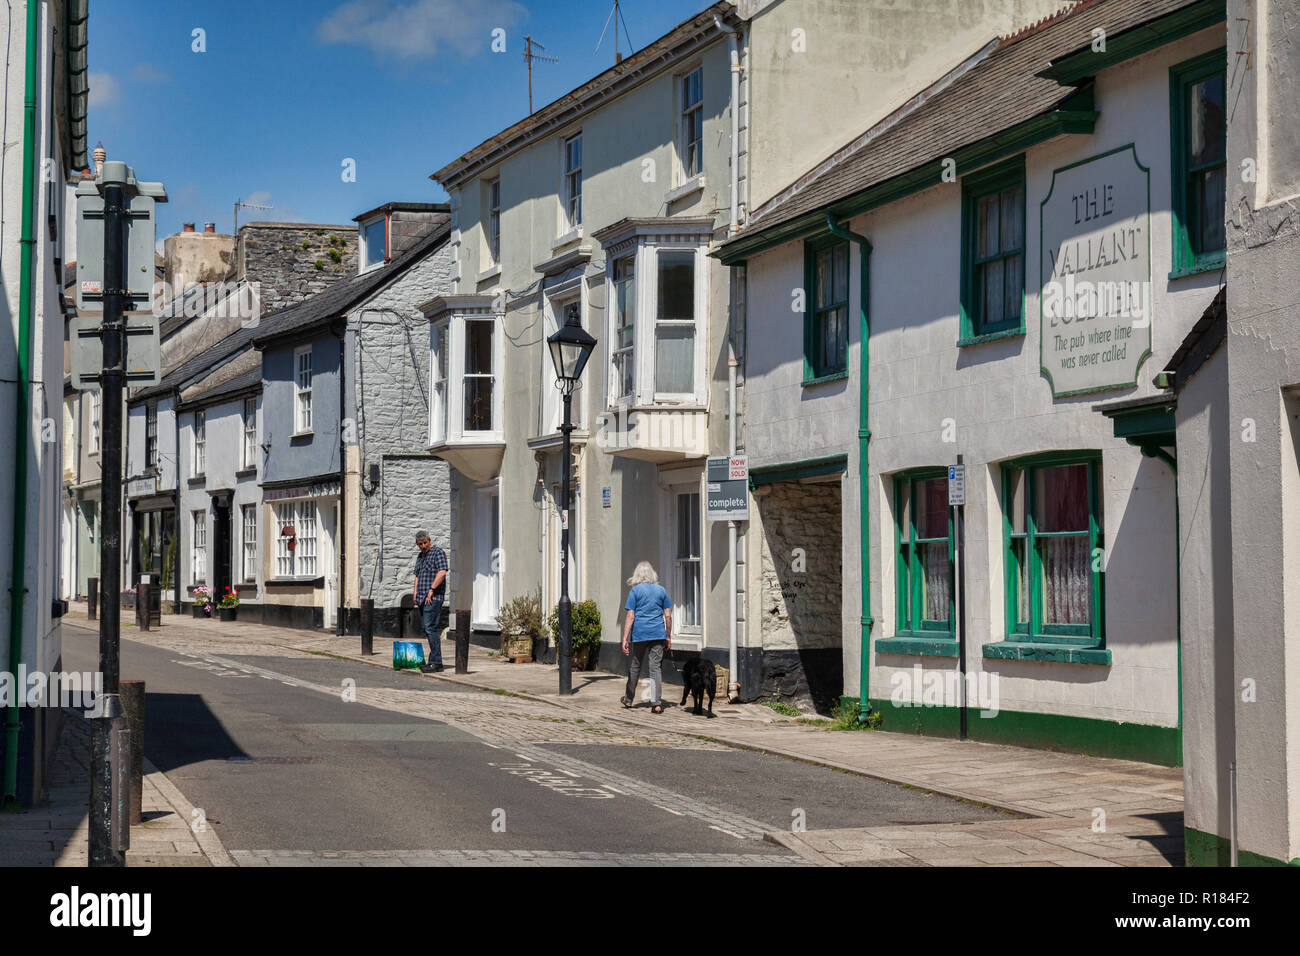 28 May 2018: Buckfastleigh, Devon UK - Fore Street, with the Valiant Soldier Museum. - Stock Image